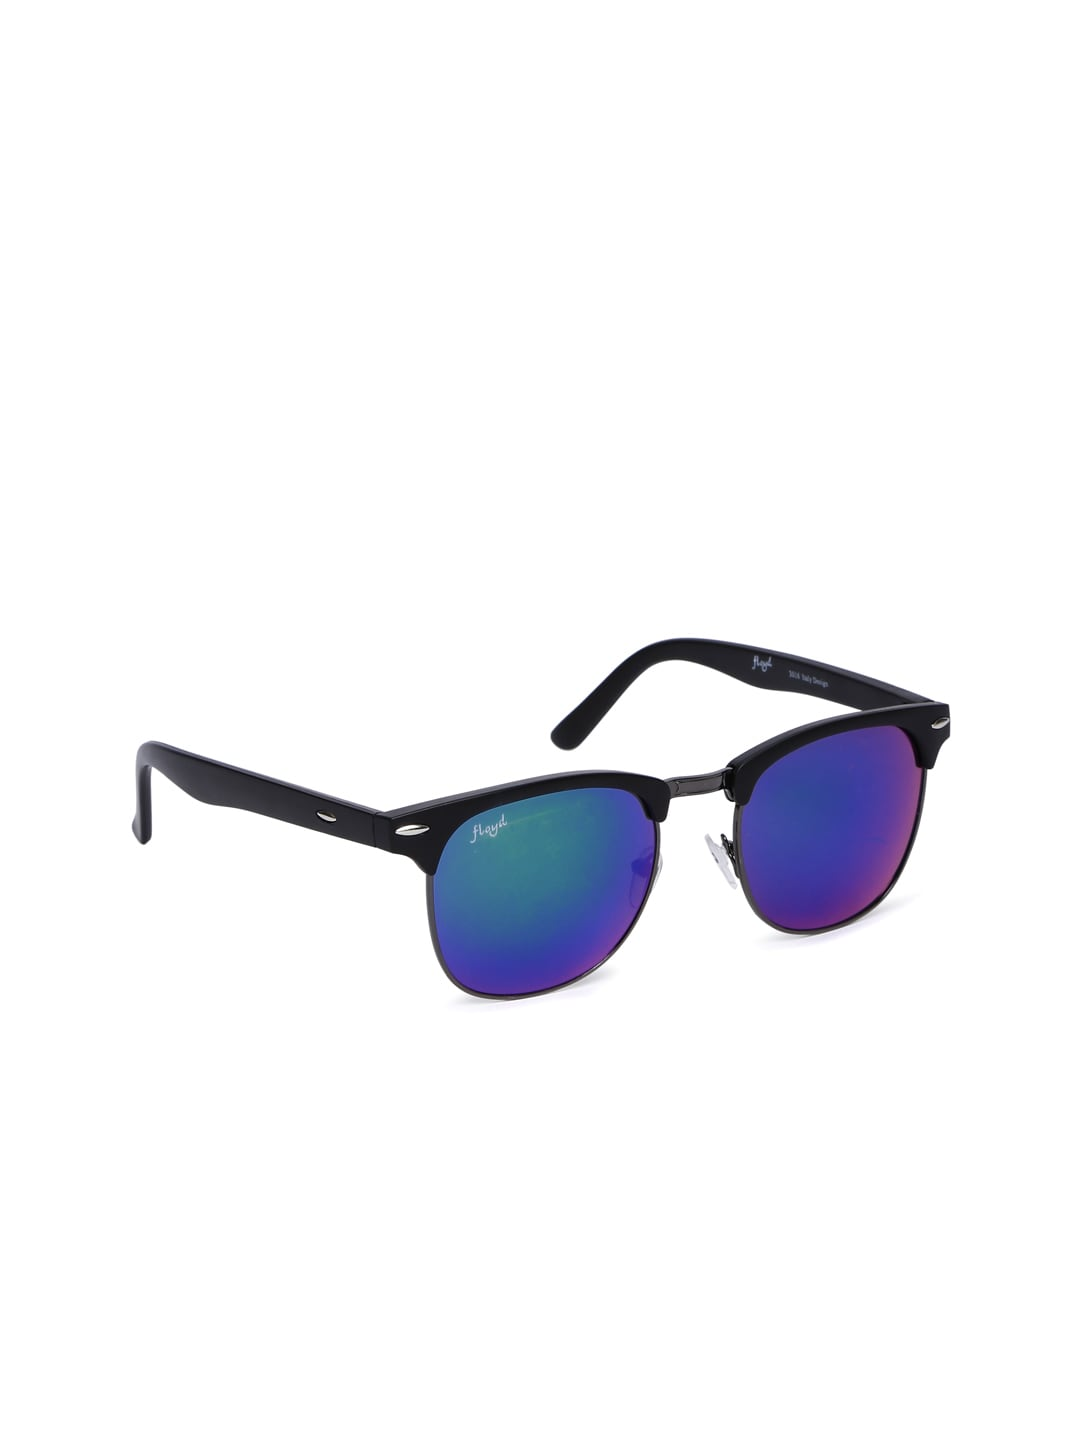 231e6803321 Sunglasses For Men - Buy Mens Sunglasses Online in India